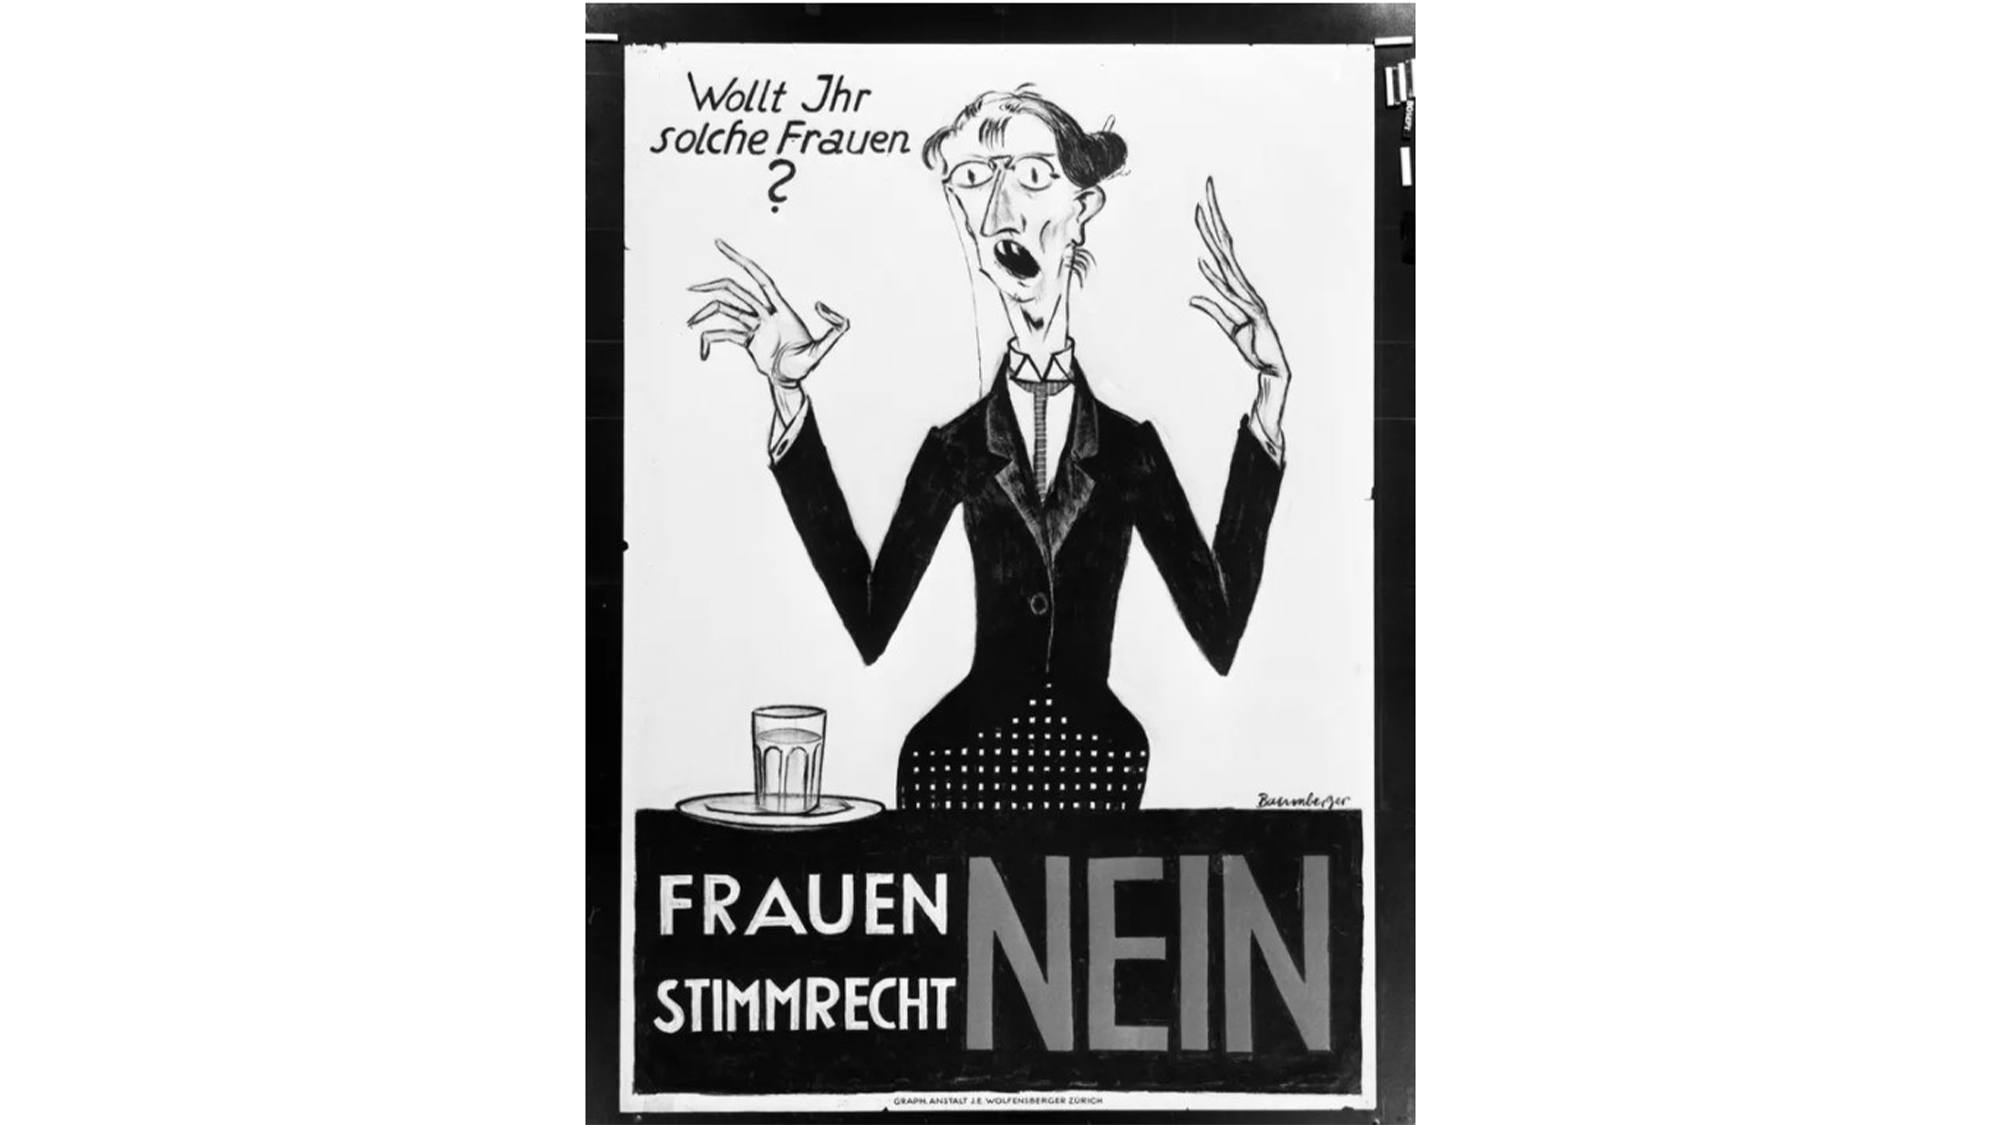 Voting poster with the no-parole for the introduction of women's voting rights, designed by Otto Baumberger. The 1920 poster was used in the cantons of Basel-Stadt and Zurich.